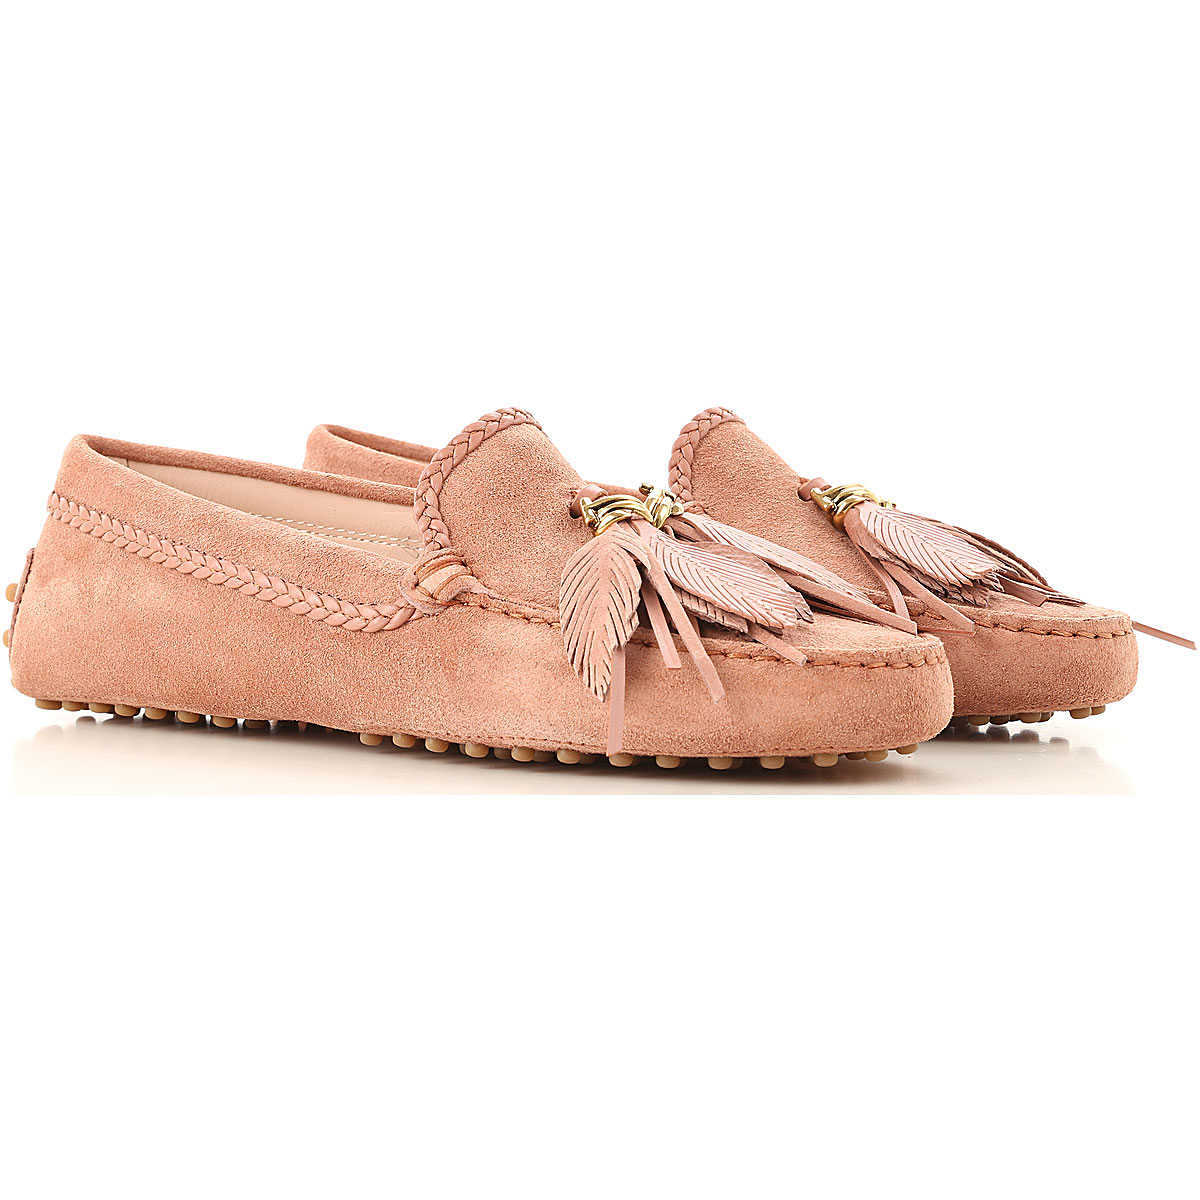 Tods Loafers for Women On Sale Dusty Pink - GOOFASH